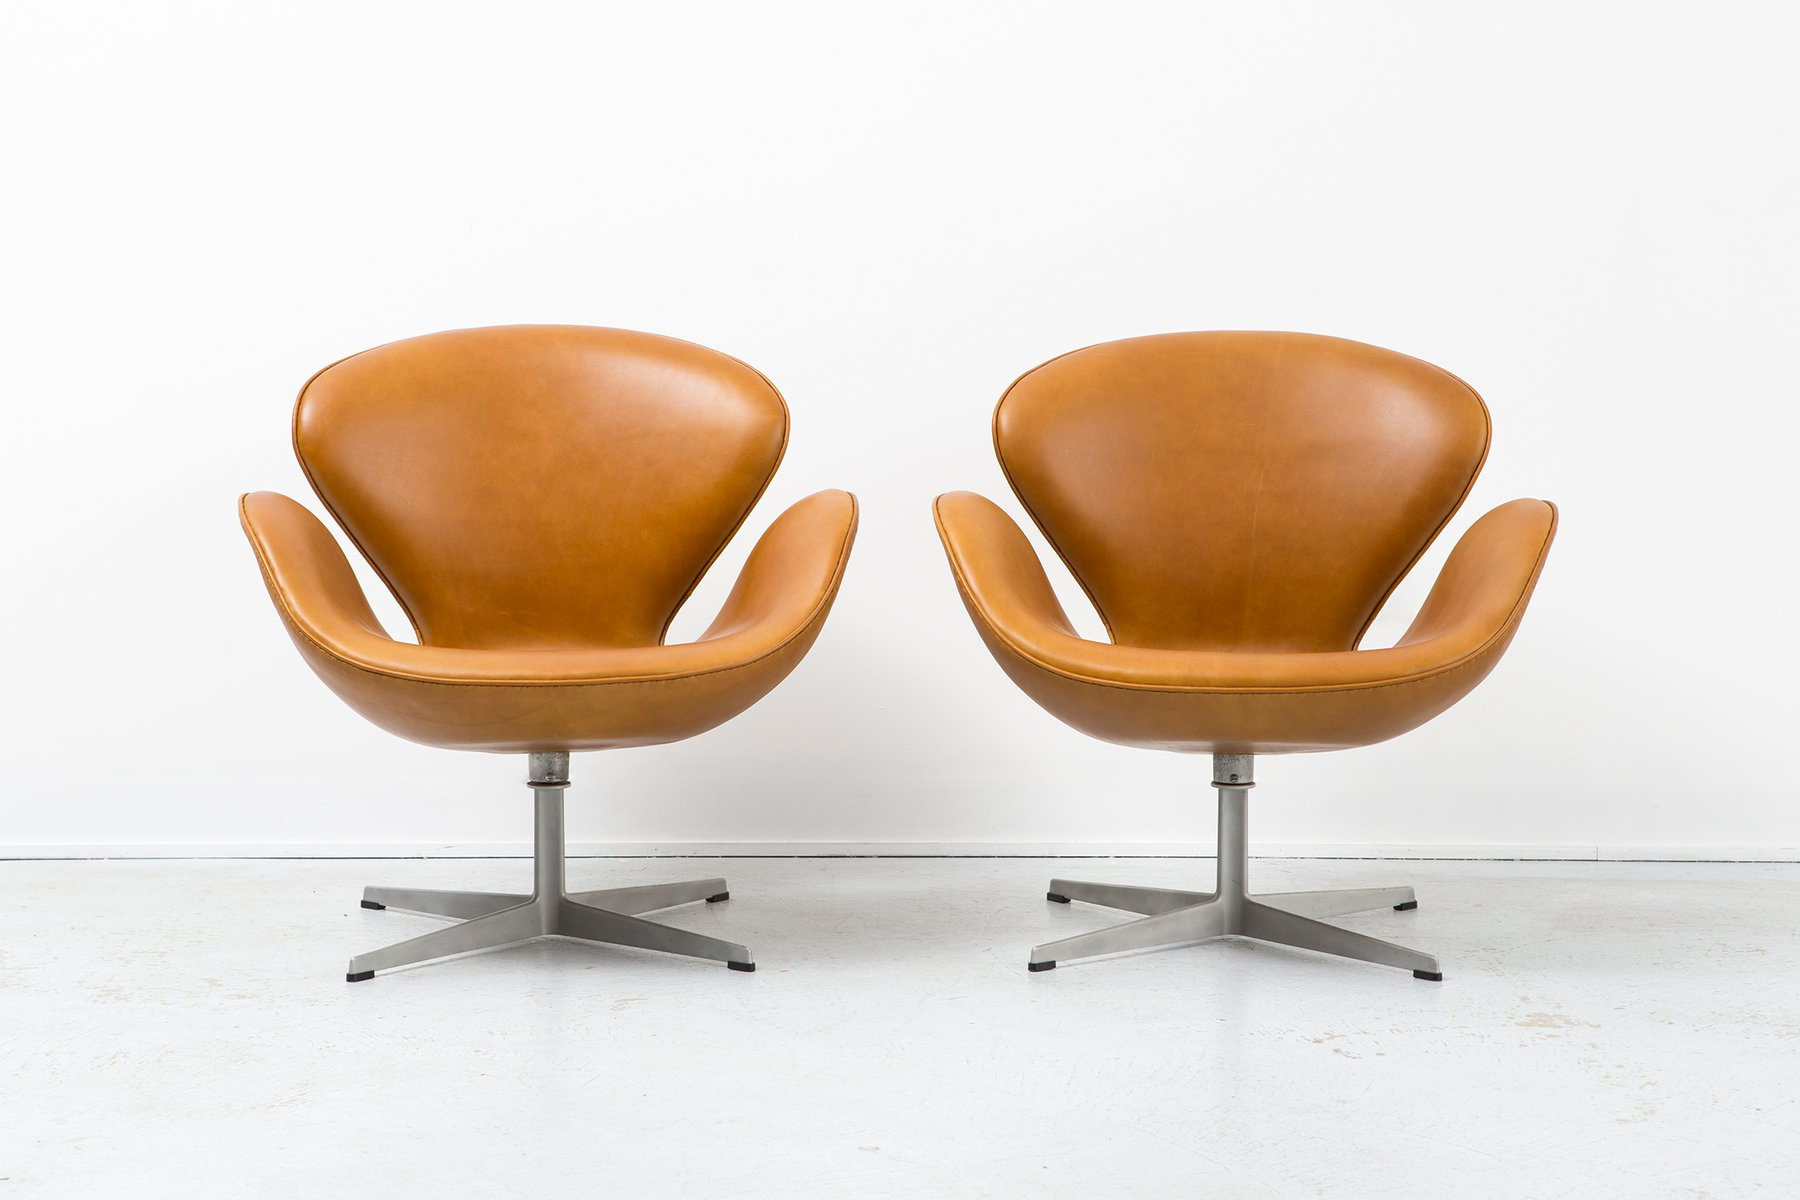 This arne jacobsen swan chair in cognac leather by fritz hansen is no - Swan Chairs By Arne Jacobsen For Fritz Hansen 1950s Set Of 2 11 10 500 00 Price Per Set